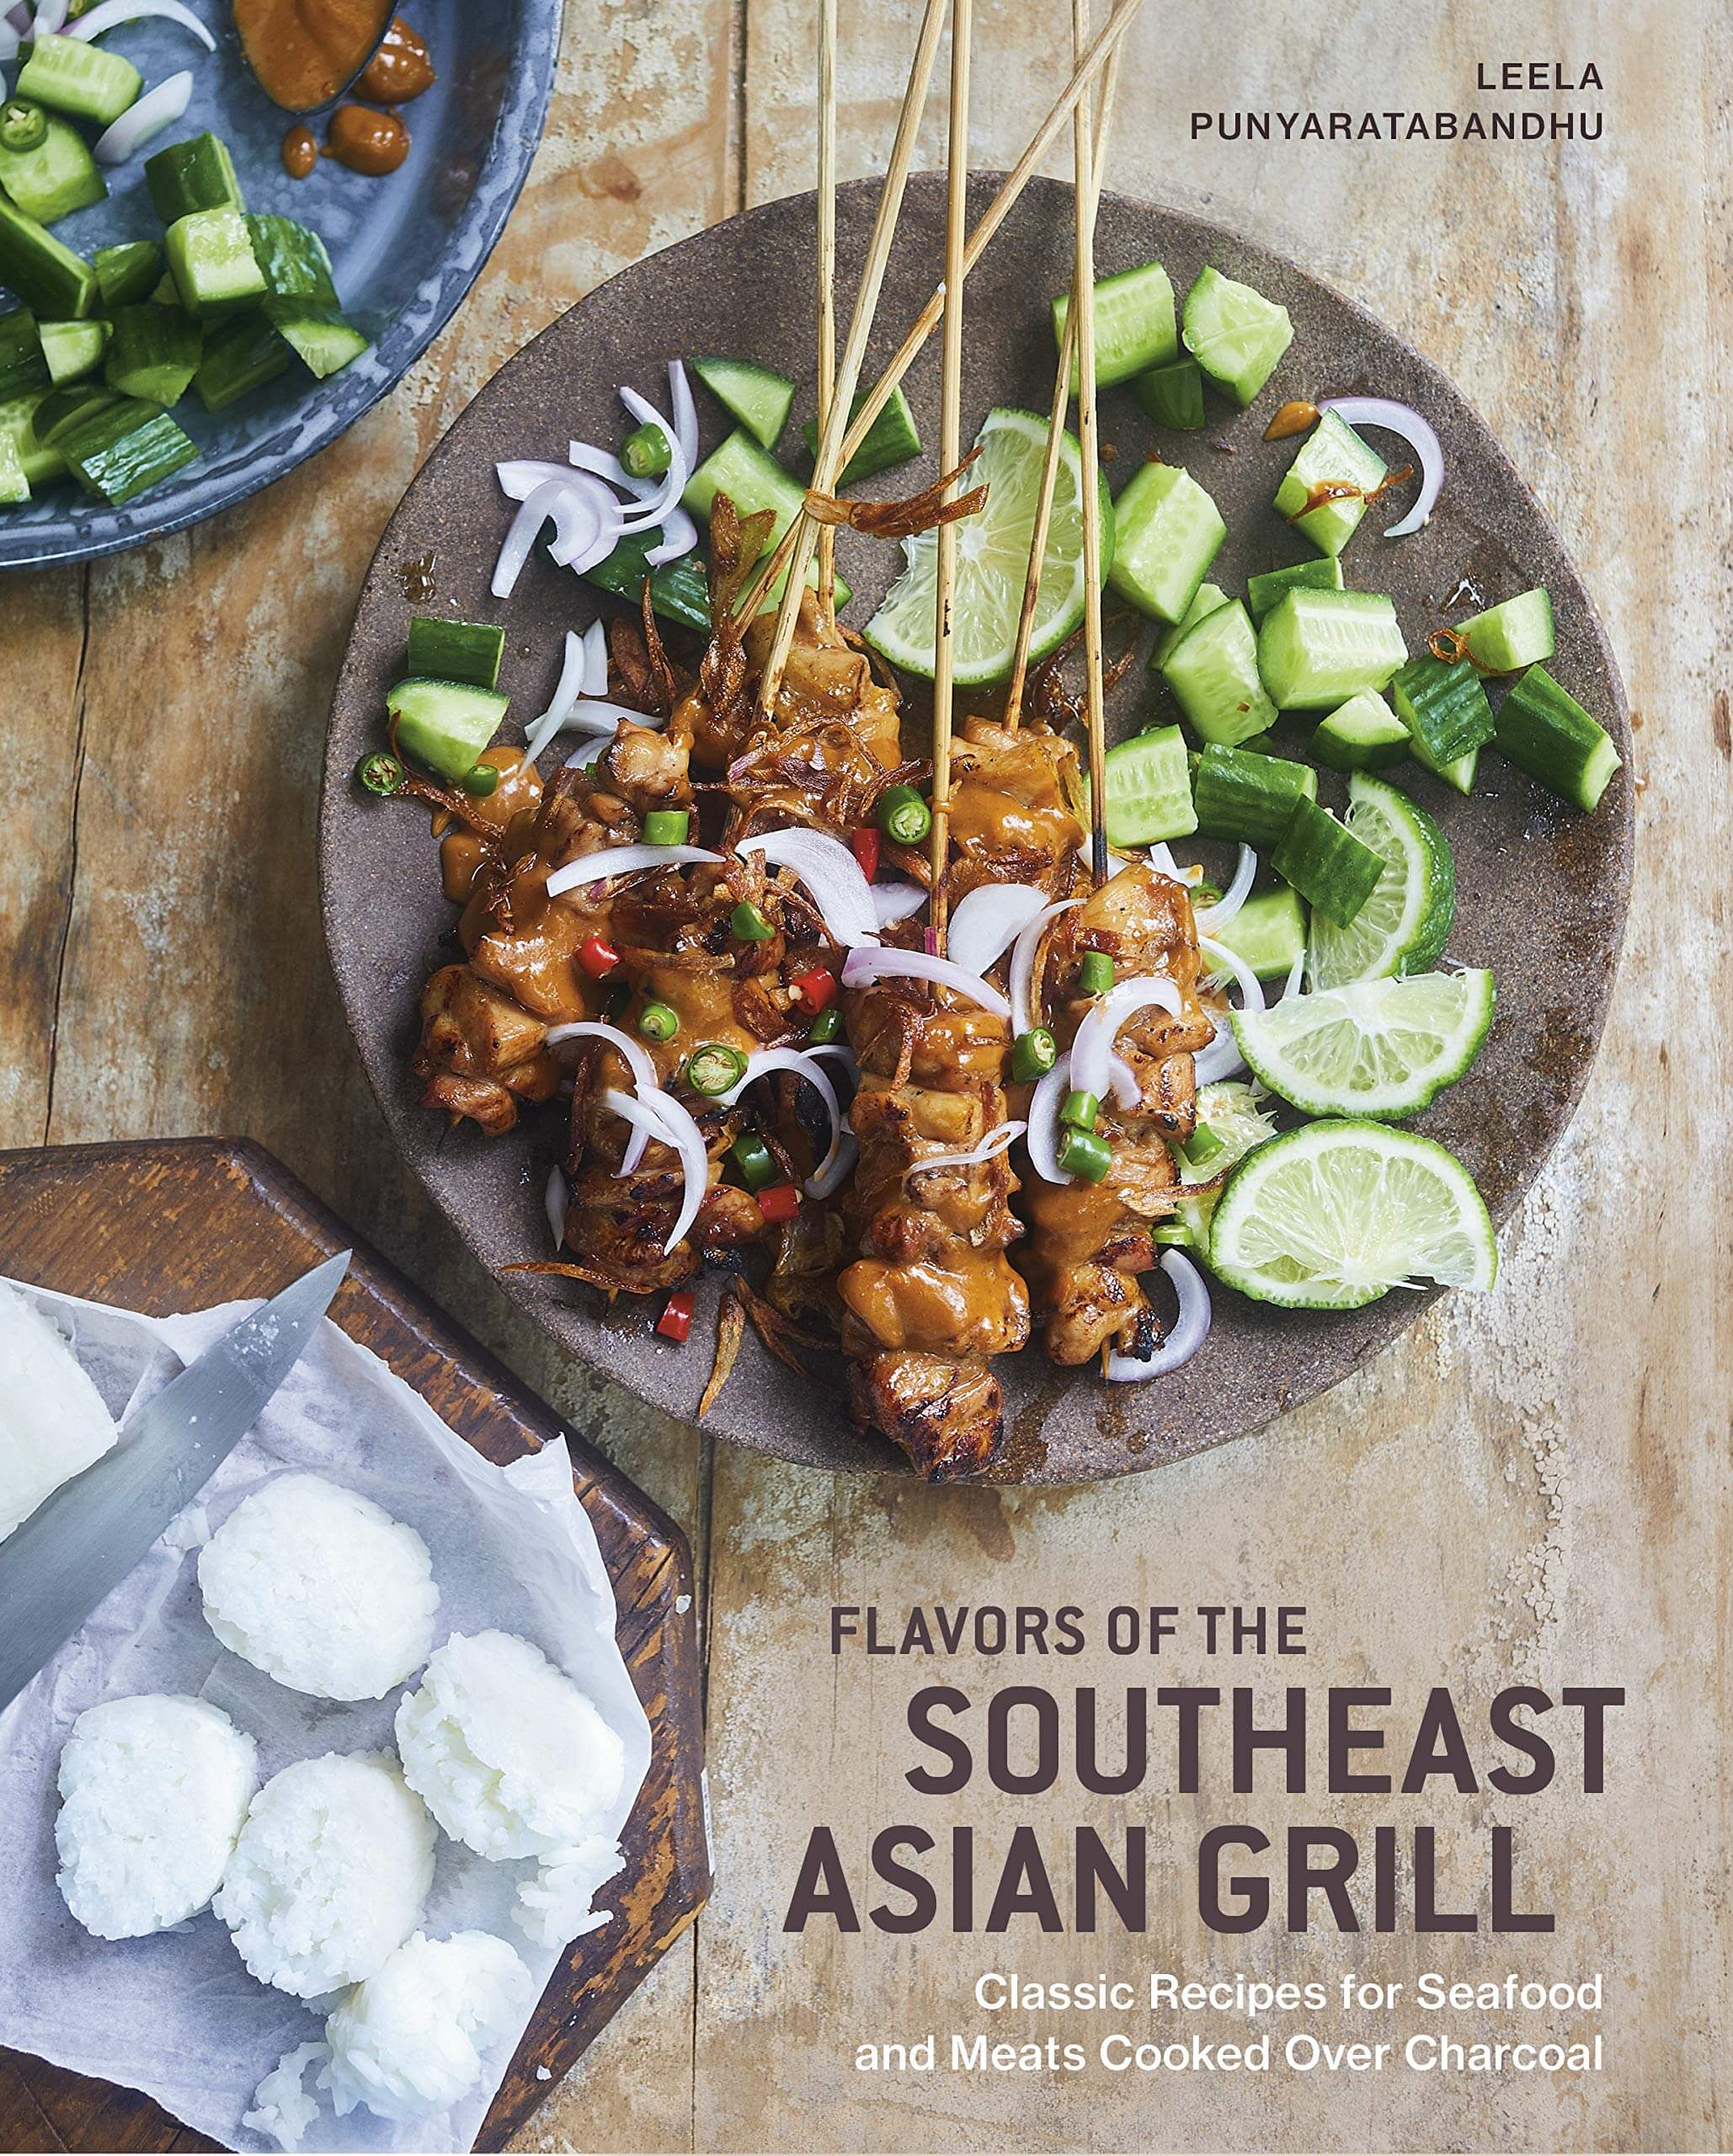 Flavors Of The Southeast Asian Grill cover image